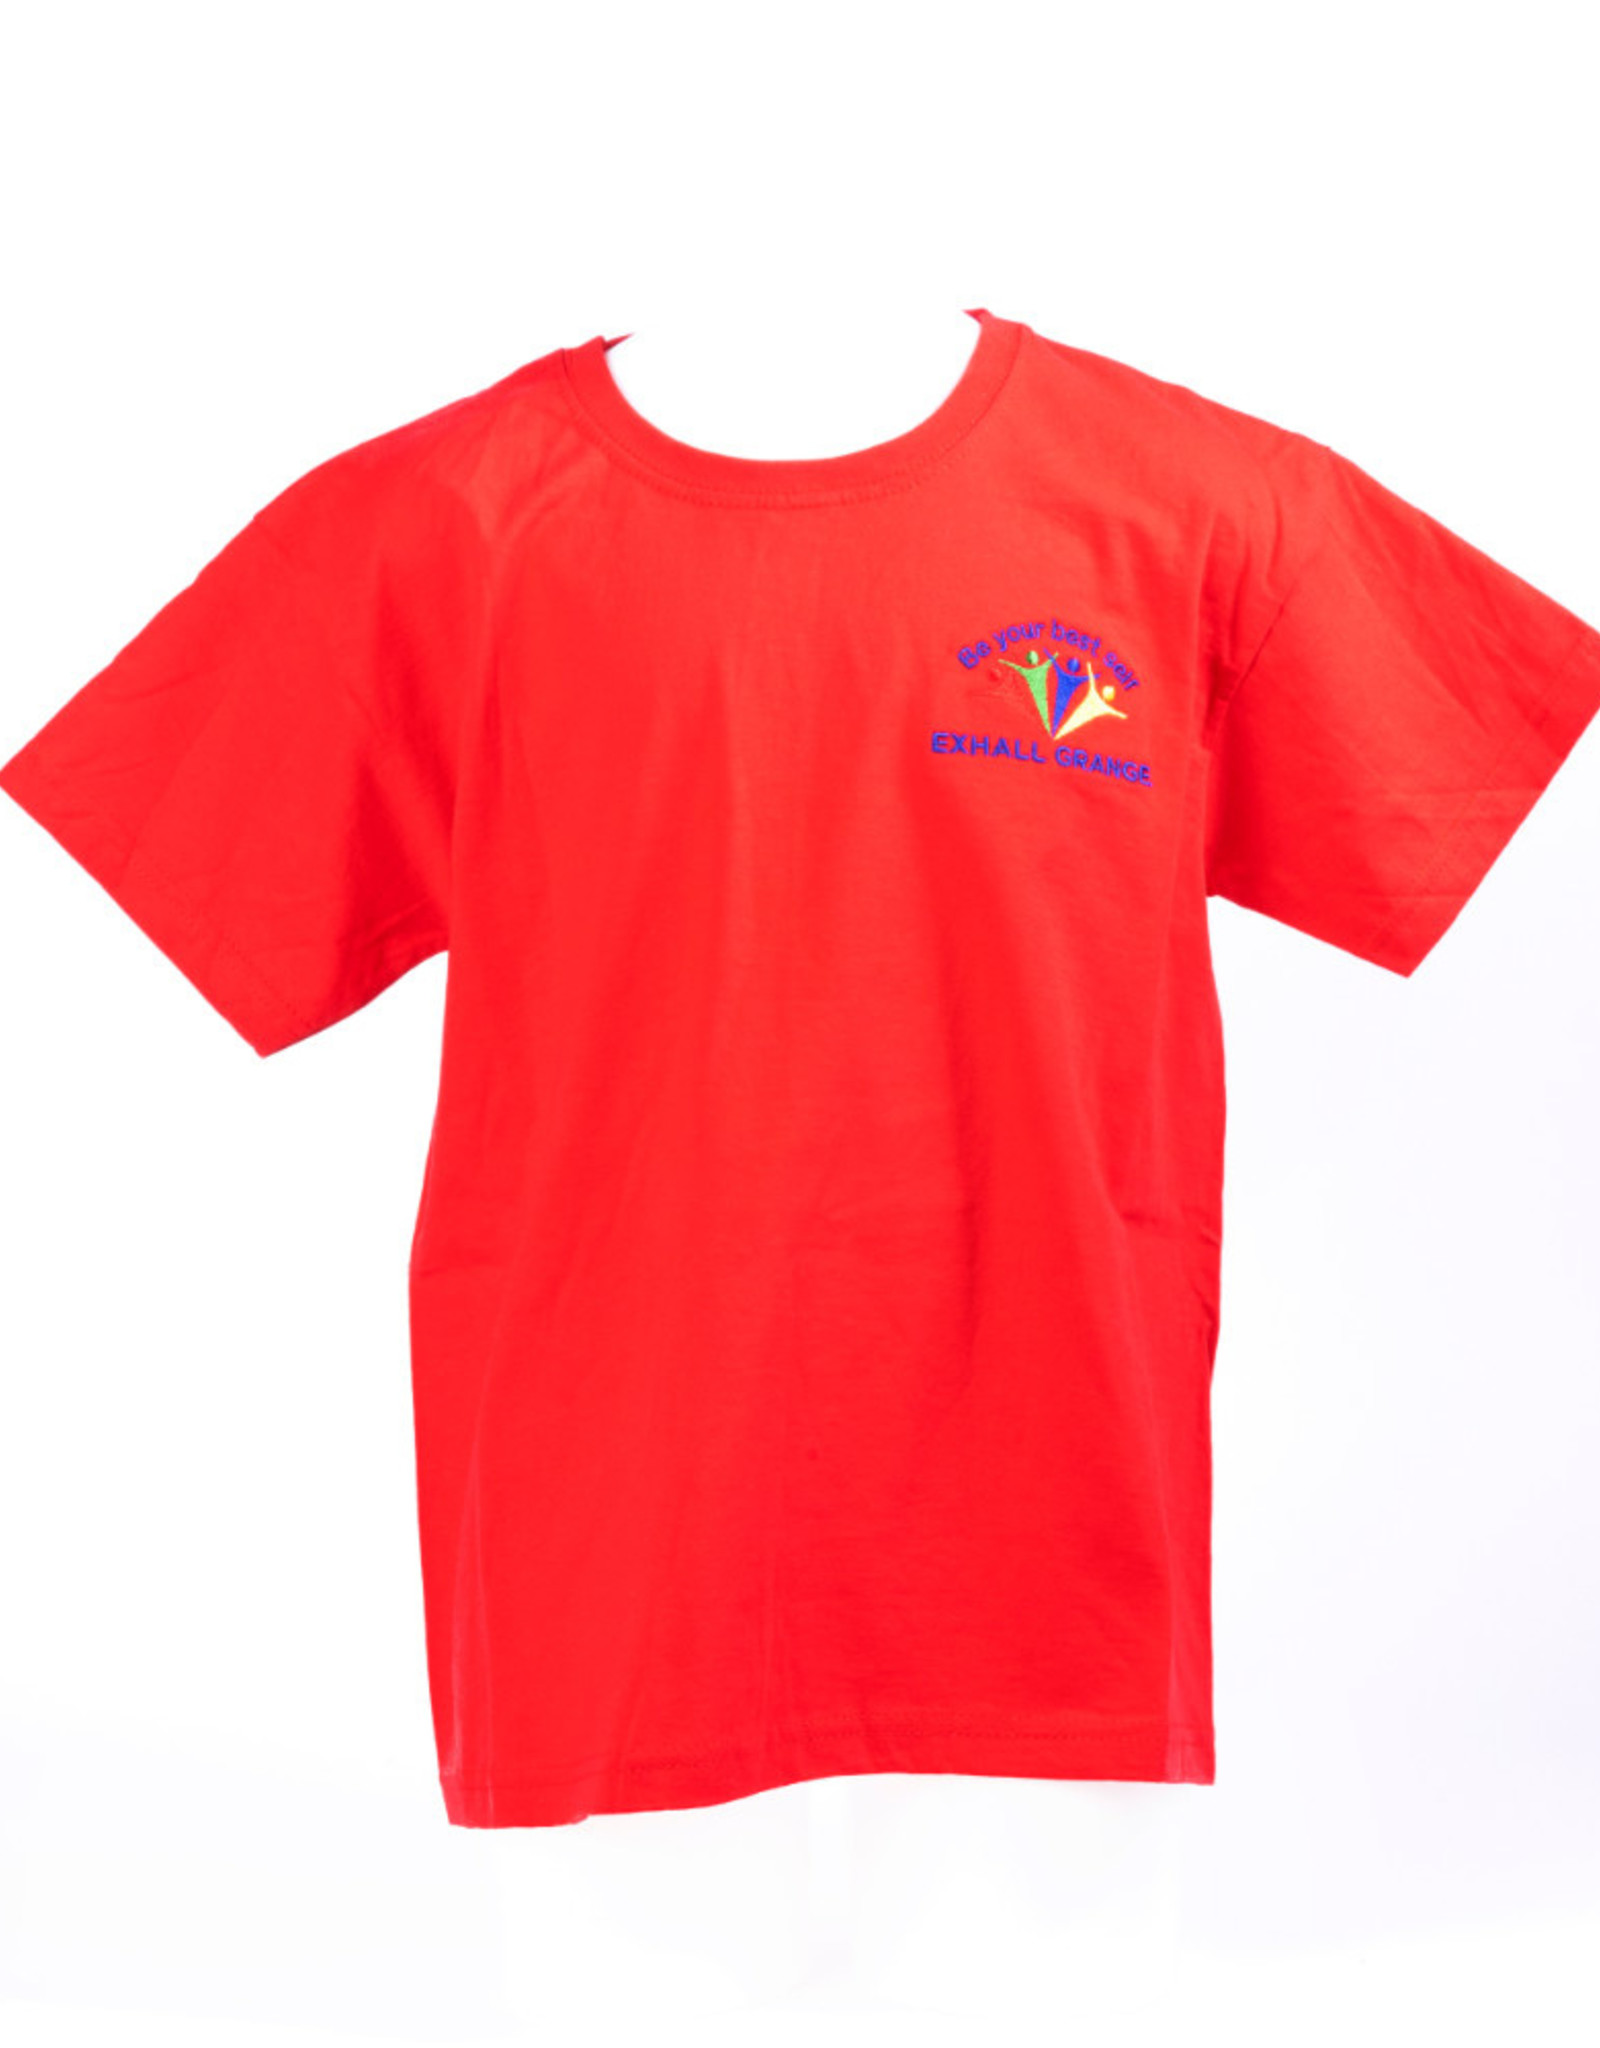 FRUIT OF THE LOOM P.E T-Shirt Primary Adult Size- Exhall Grange